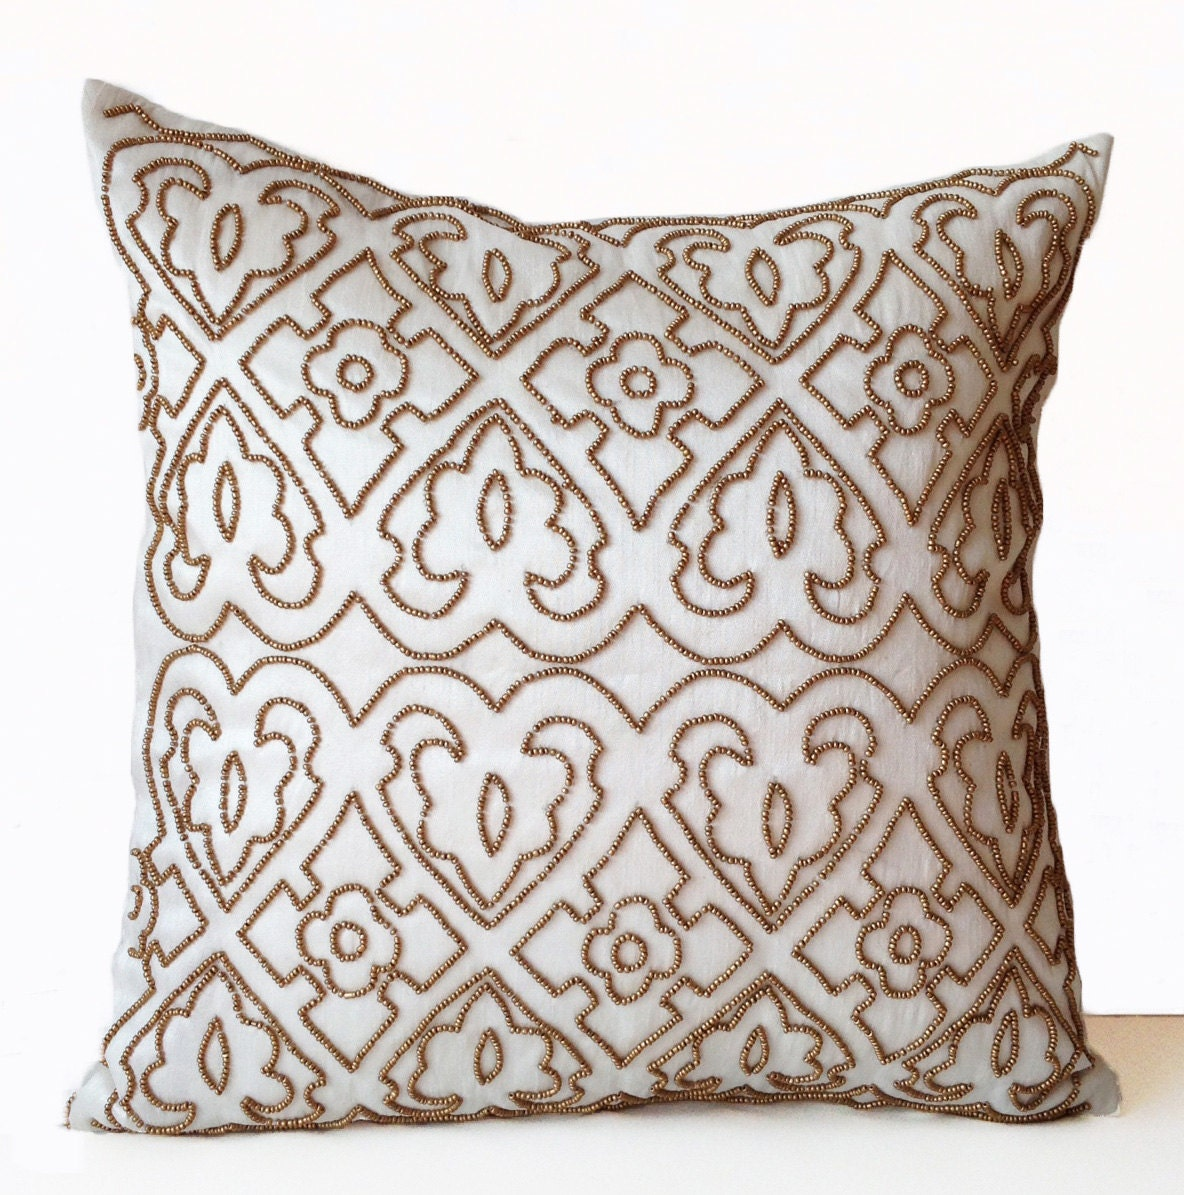 Decorative Pillow Makers : Ivory Decorative Throw Pillow Case Gold Beads Designer Pillow